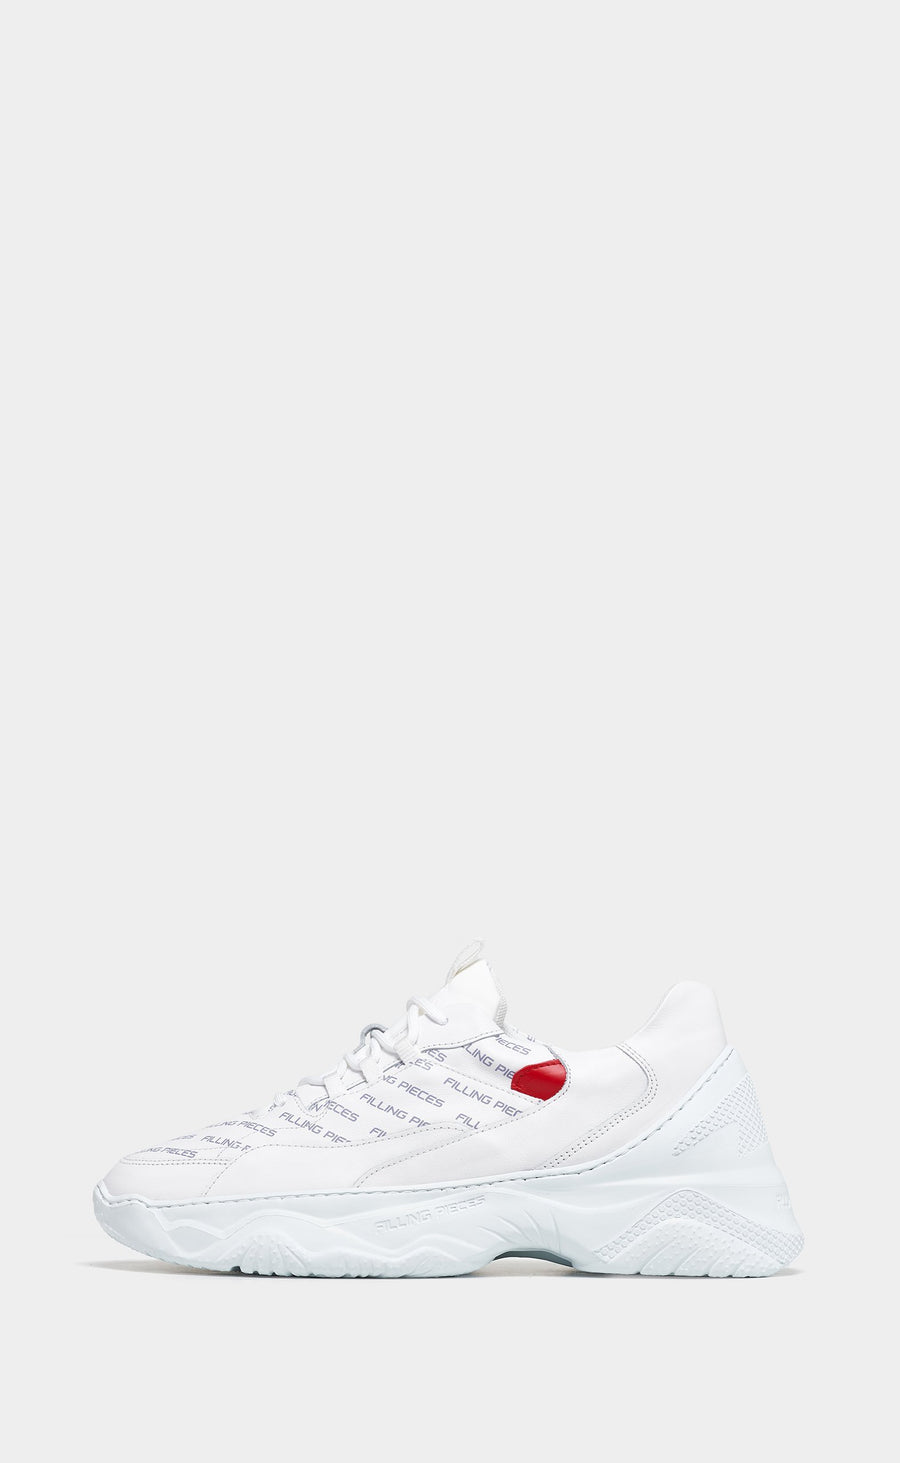 Low Shuttle Orion White/Red